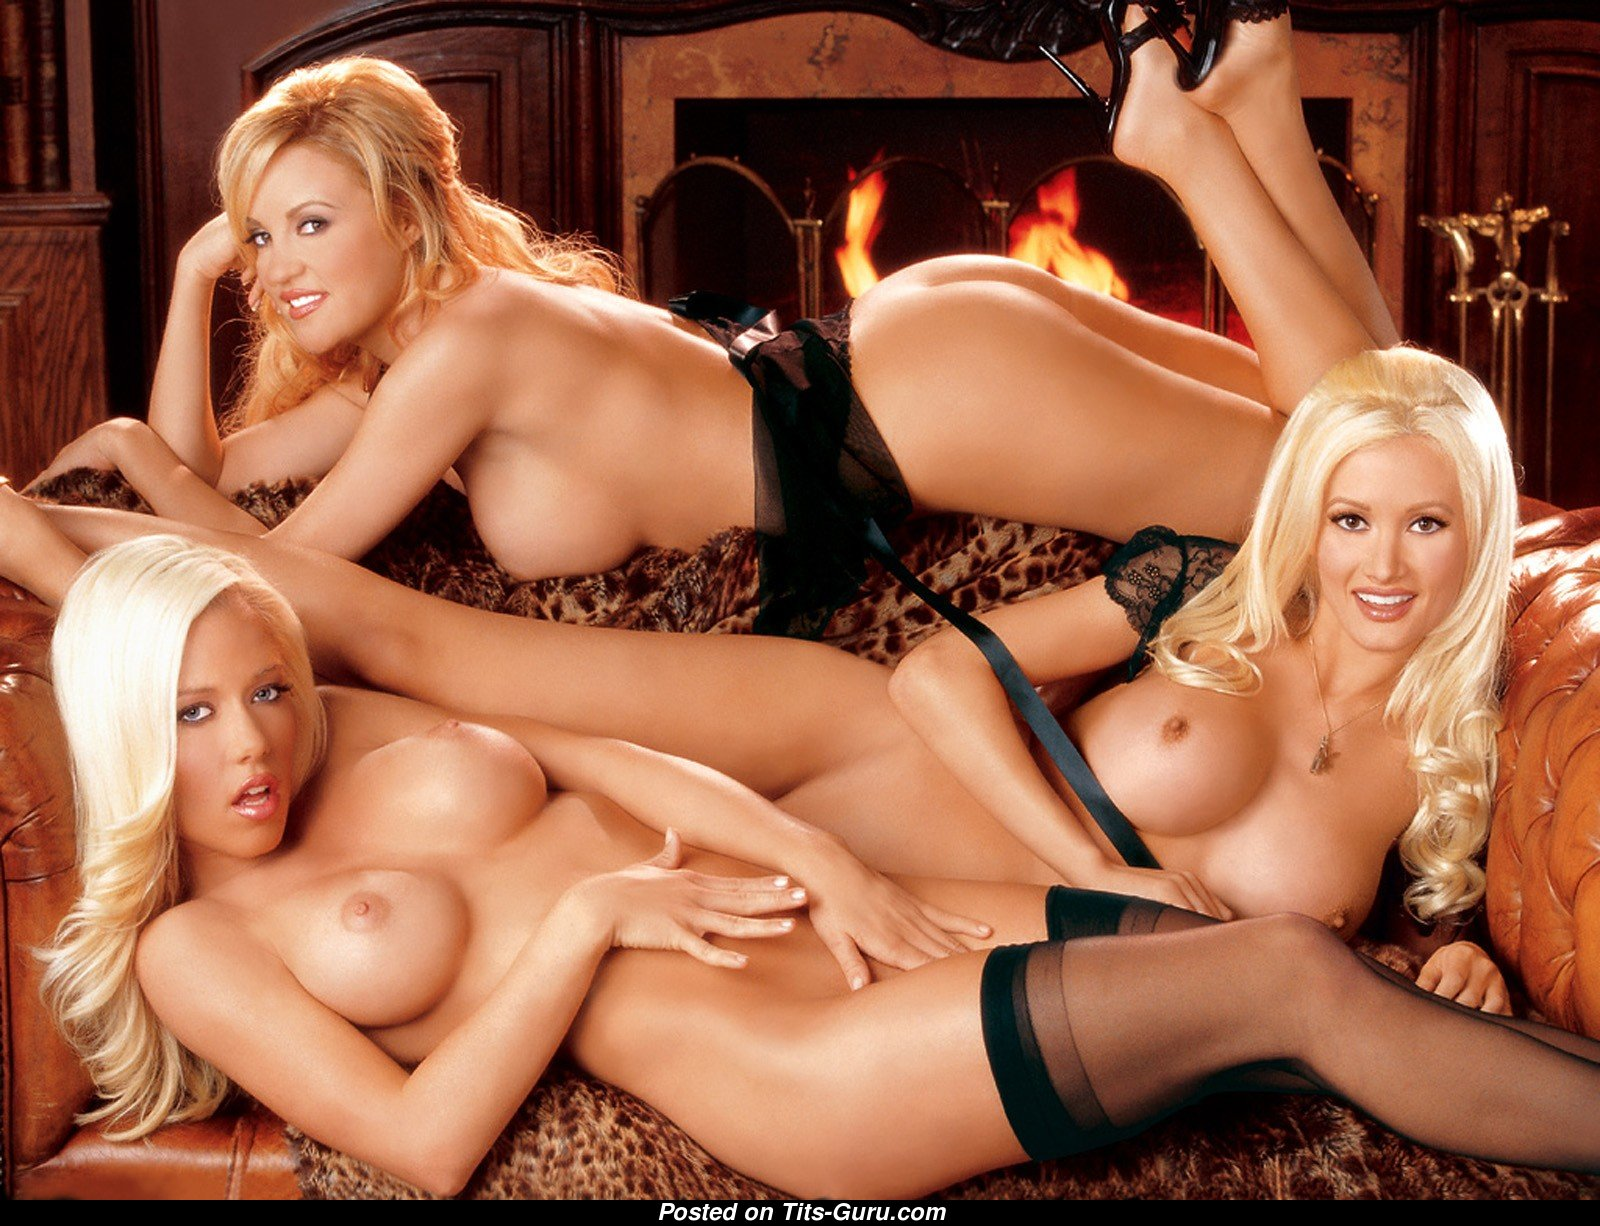 Watch Singles Erotic Games And Have Fun Inside Playboy Mansion